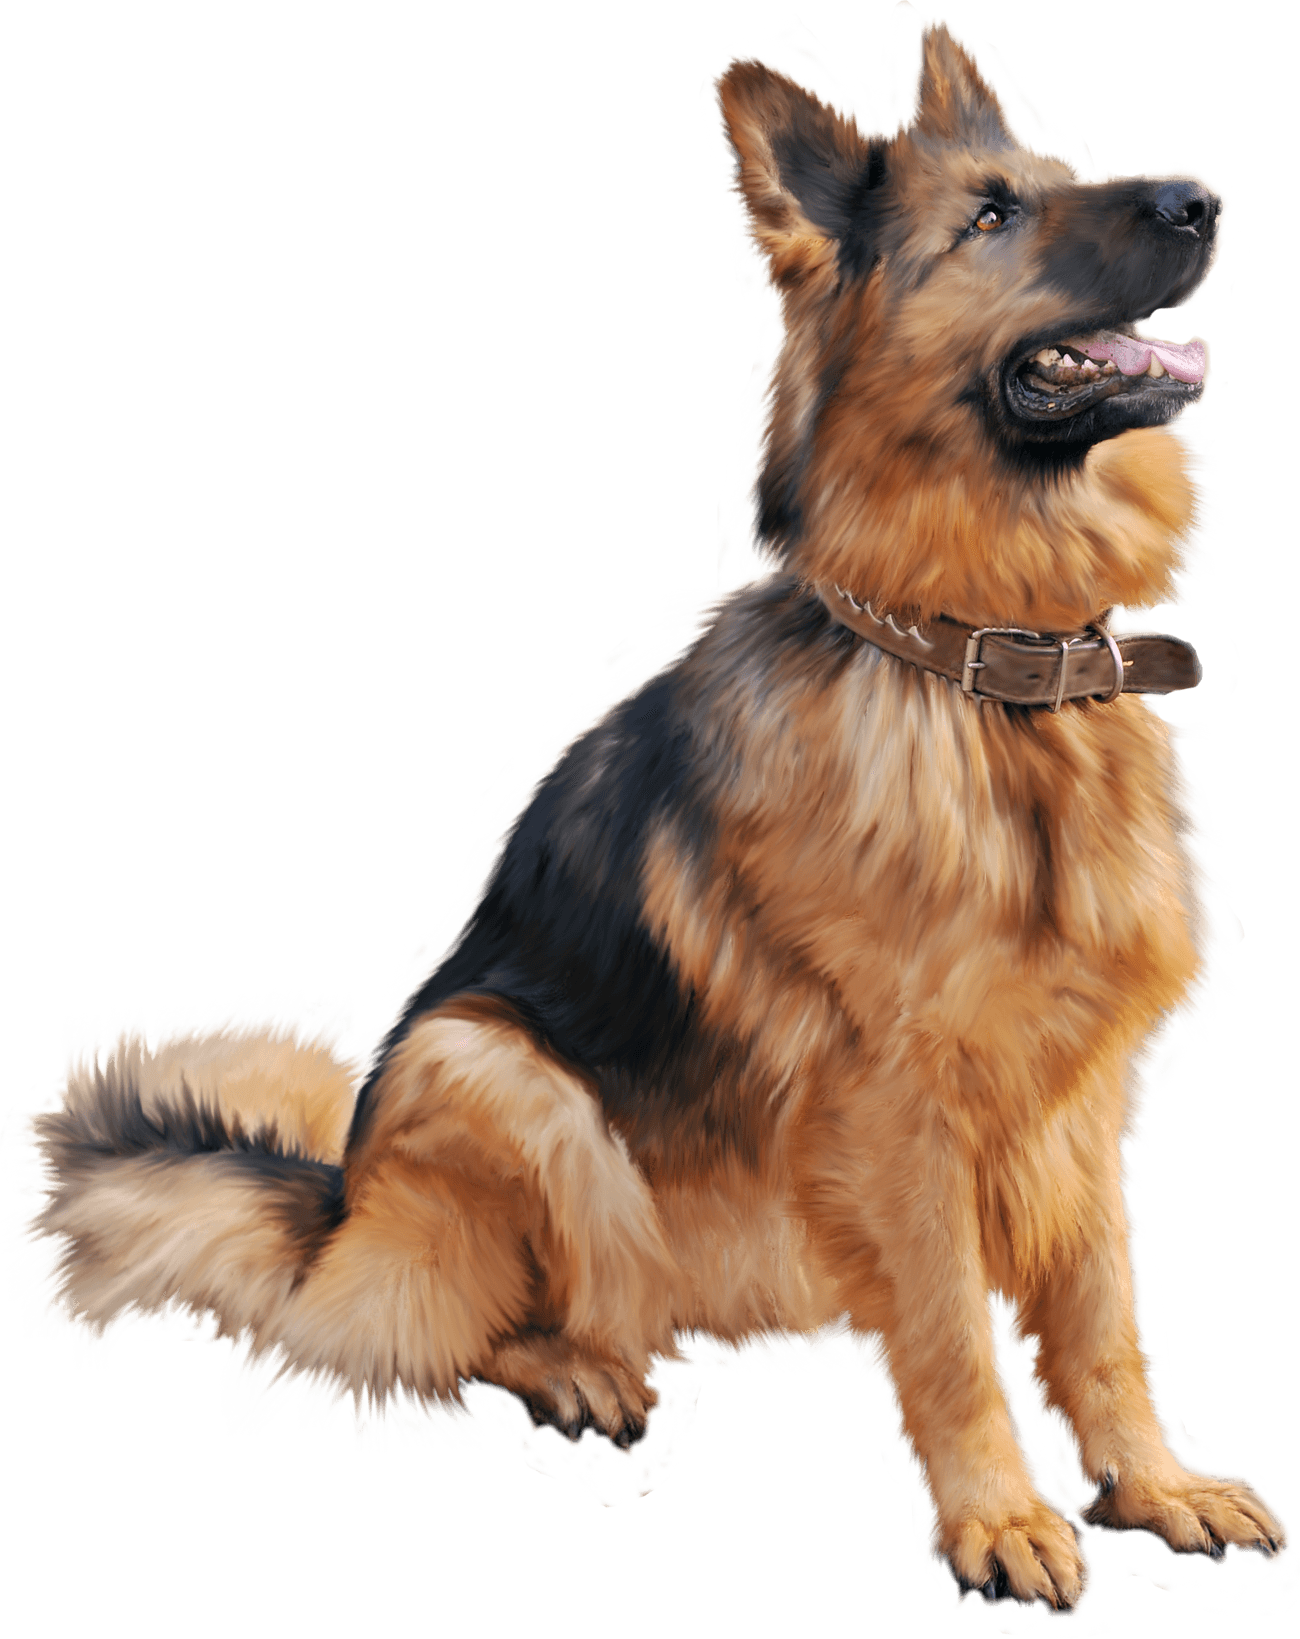 Download Dog Png Image Picture Download Dogs HQ PNG Image ...